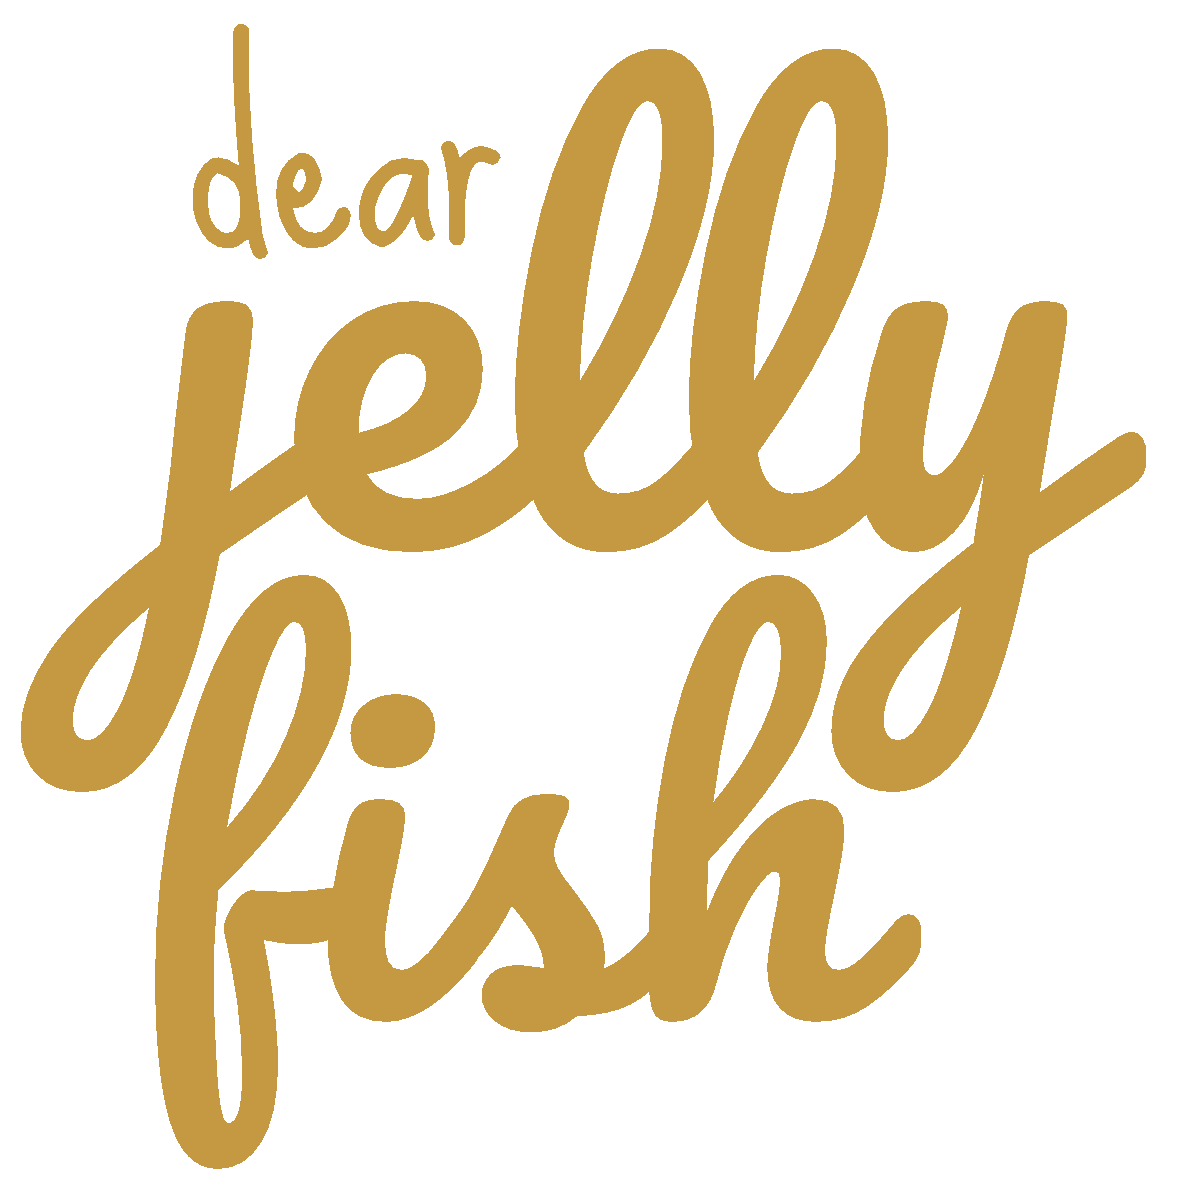 Dear Jellyfish